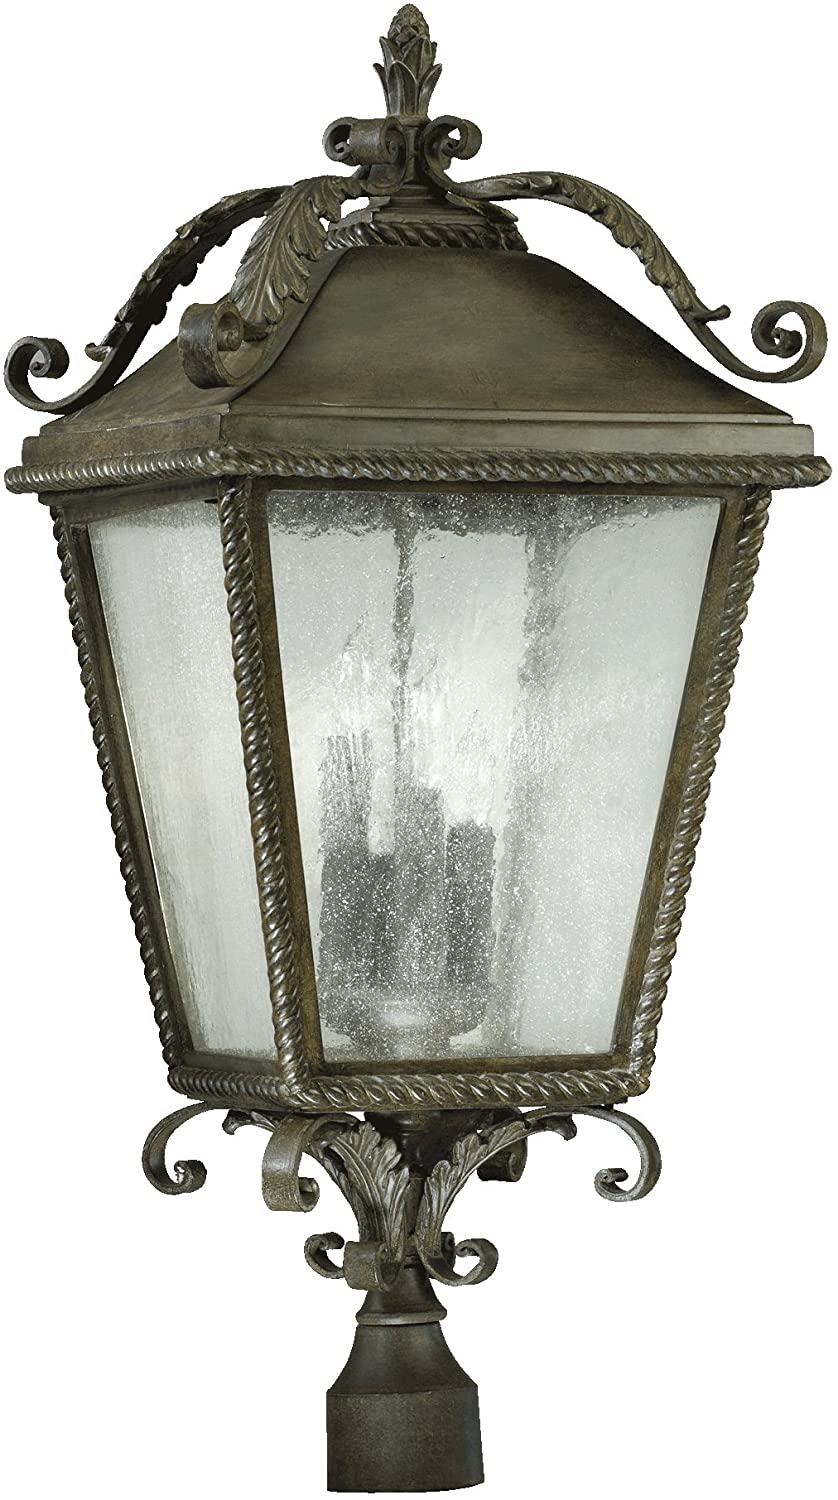 Quorum International 7912-4-43 Rochelle 4 Light Post, Toasted Sienna